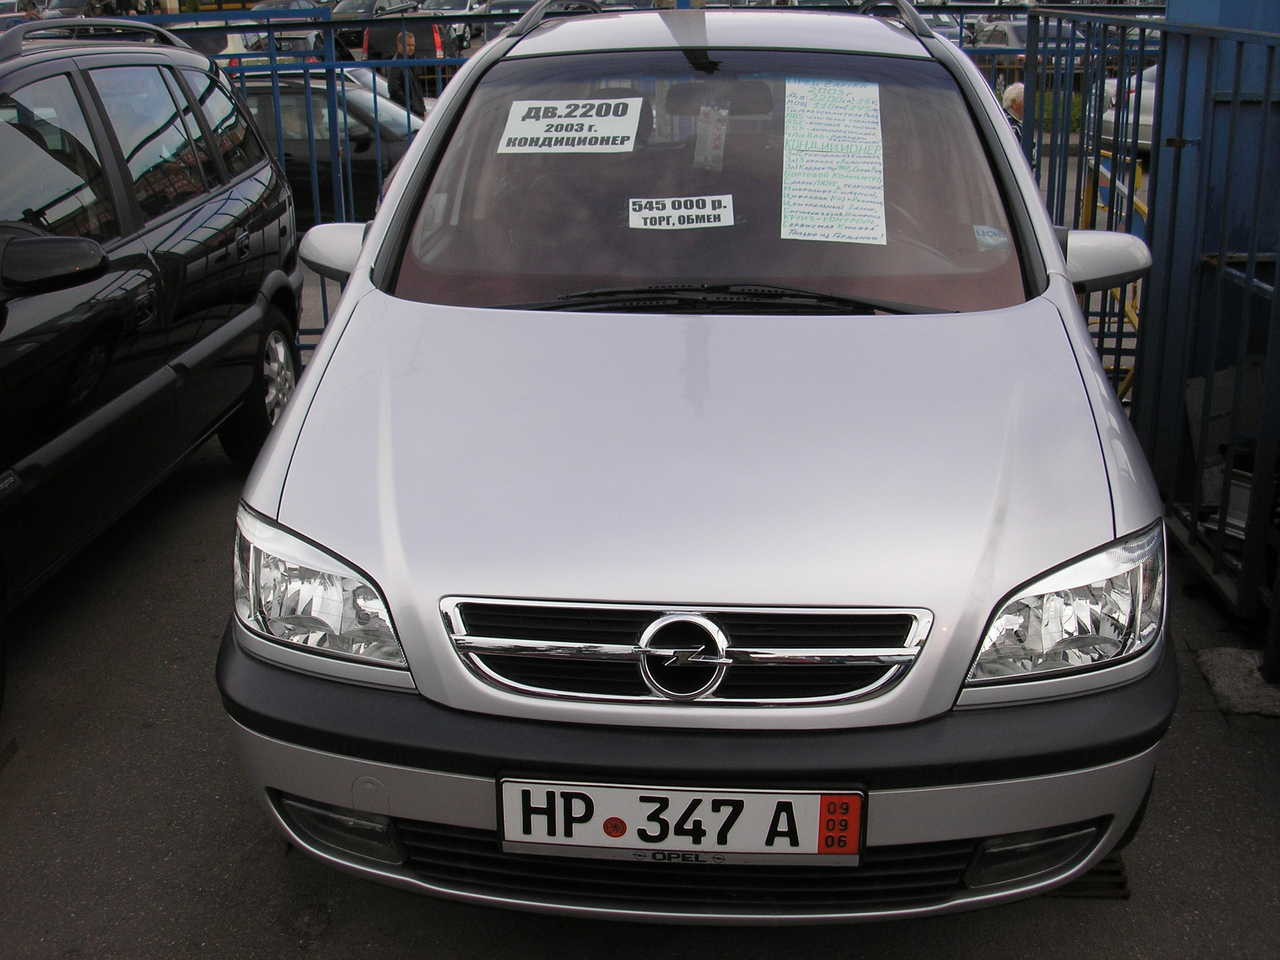 2003 opel zafira pictures gasoline ff for sale. Black Bedroom Furniture Sets. Home Design Ideas